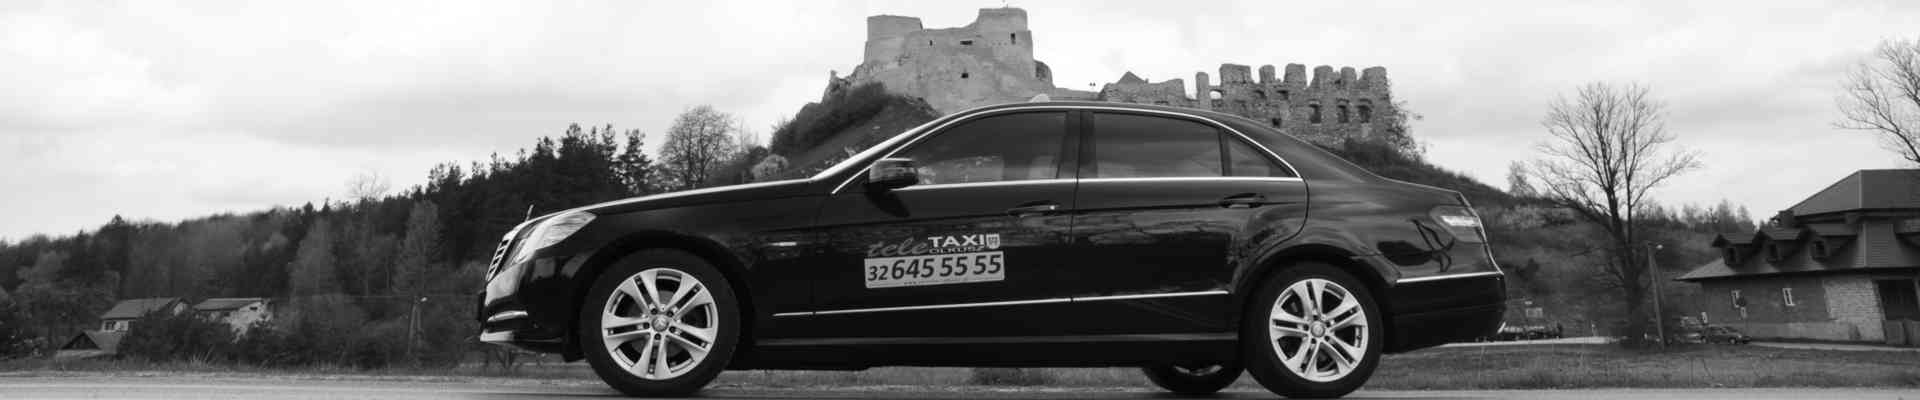 BUSINESS TAXI Olkusz Mercedes W212 BANER